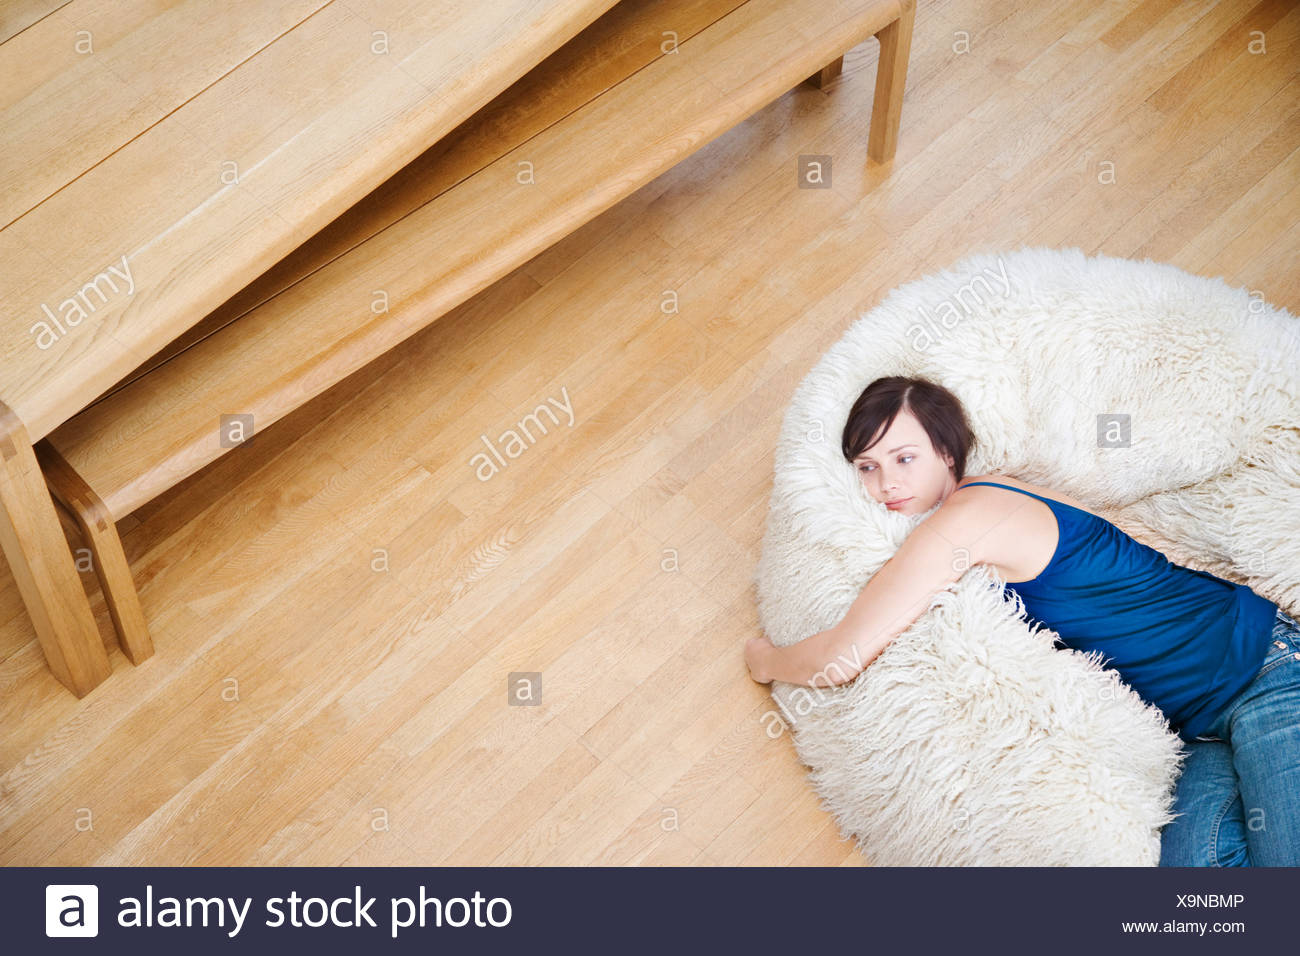 Exceptionnel Woman On A Furry Bean Bag Chair